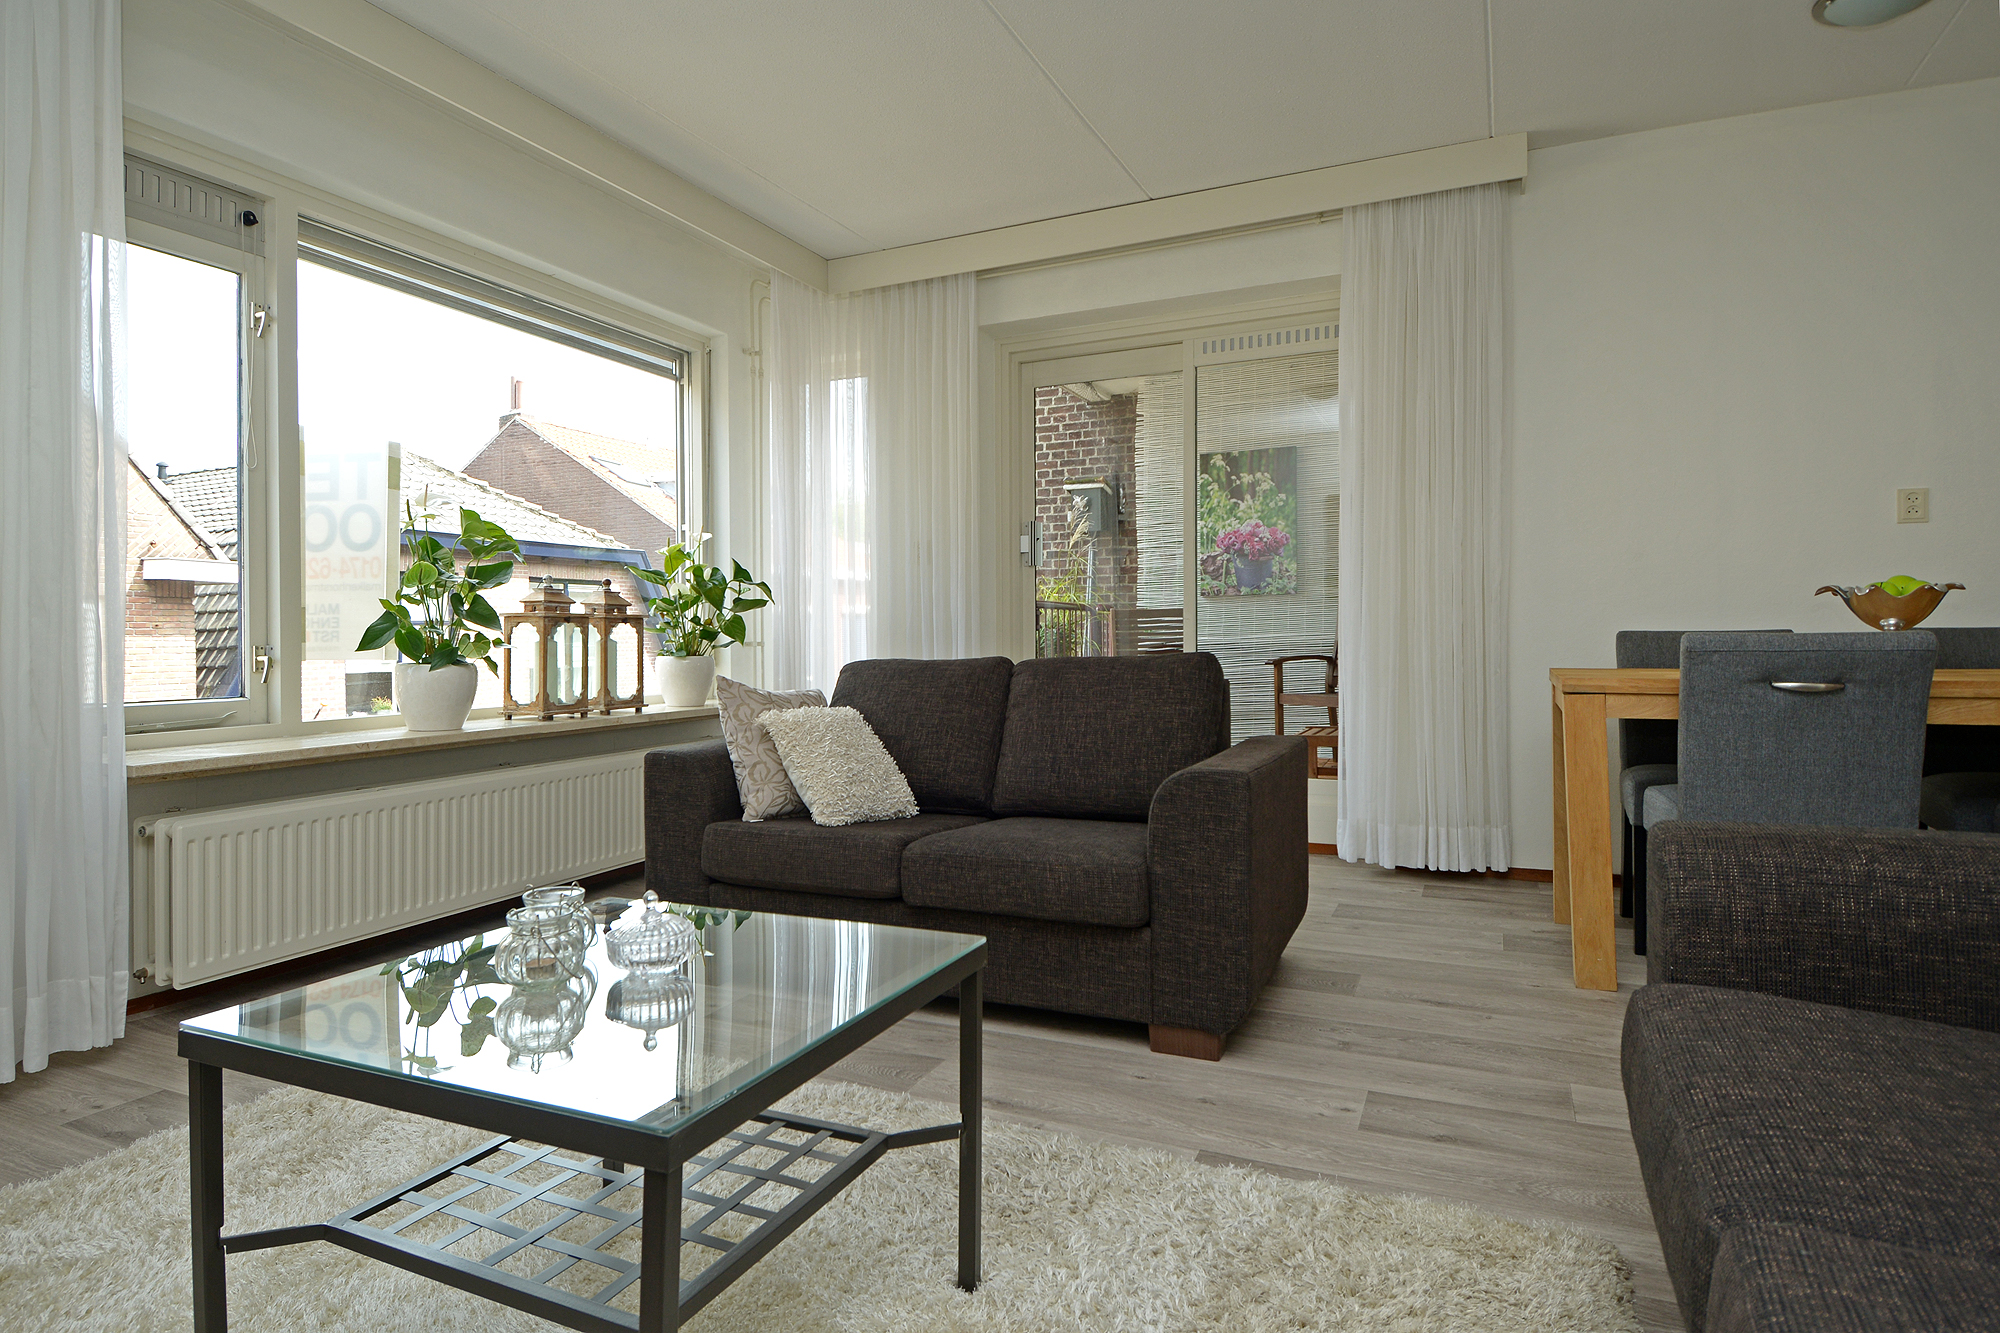 Woonkamer appartement, na restyling | MooiVerkocht.nl